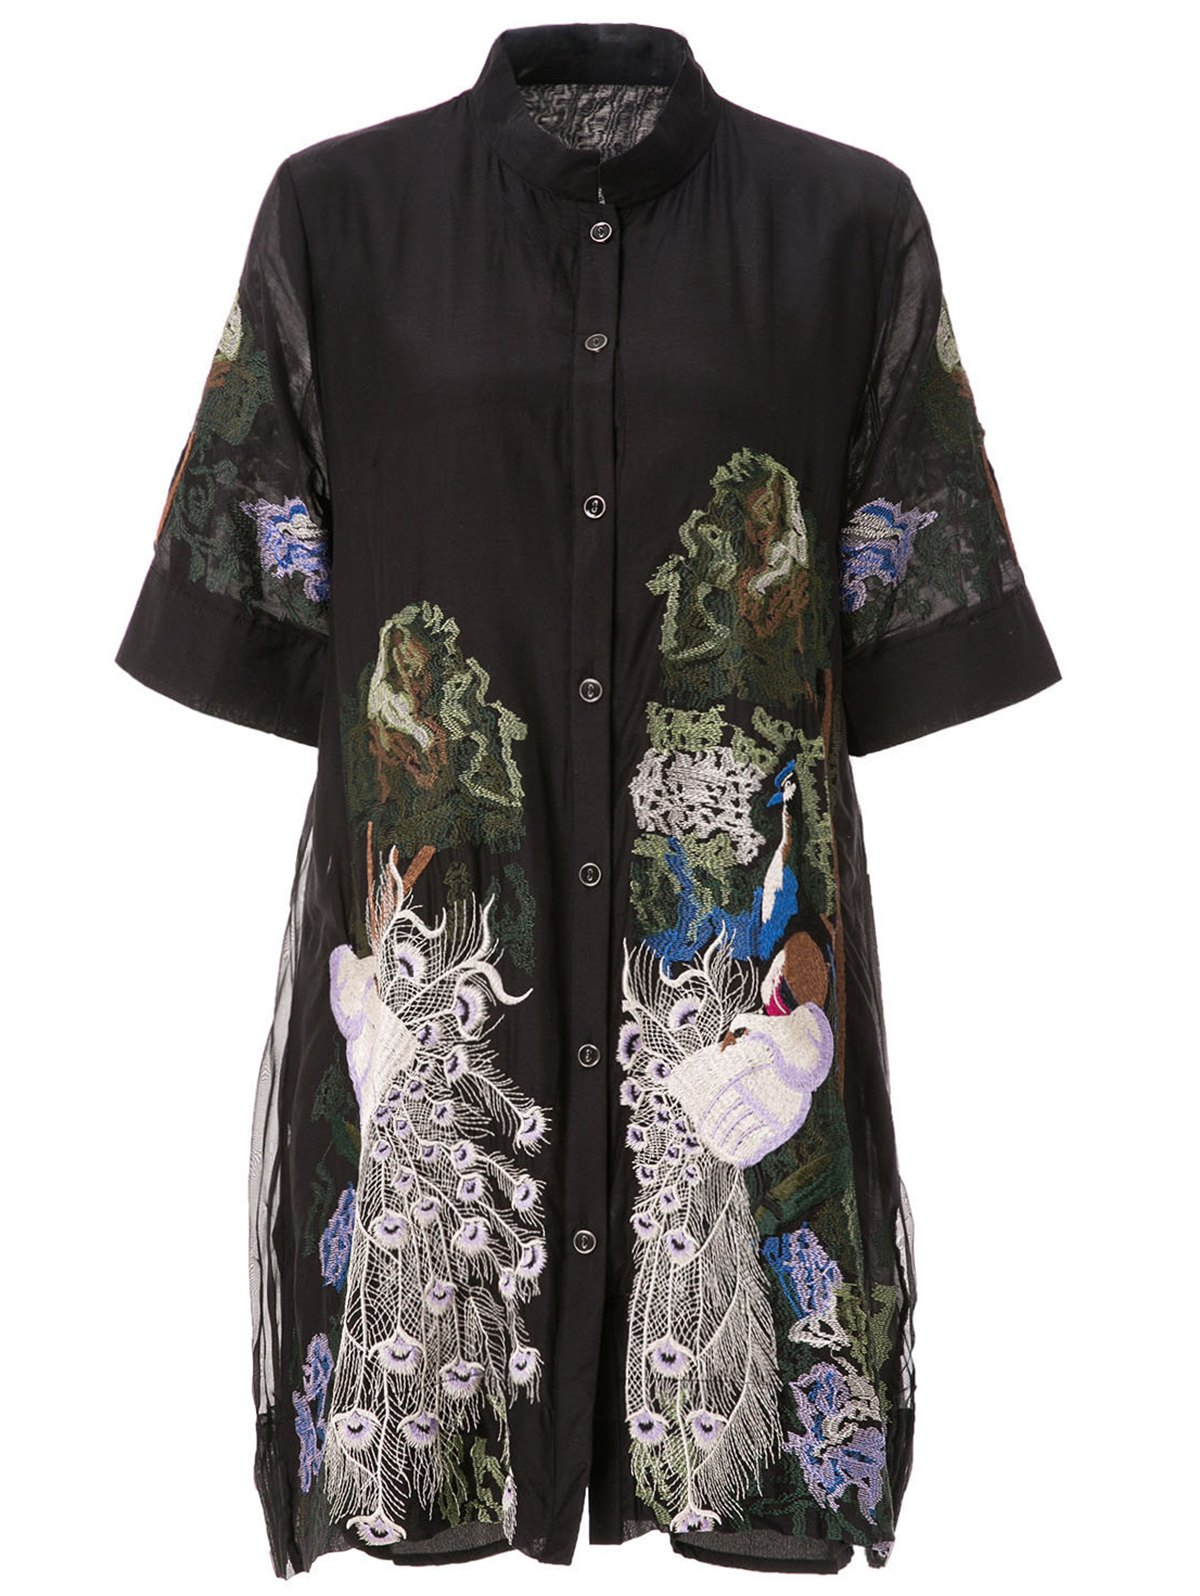 Shop Retro Style Stand Collar Peacock Embroidery Short Sleeve Dress For Women